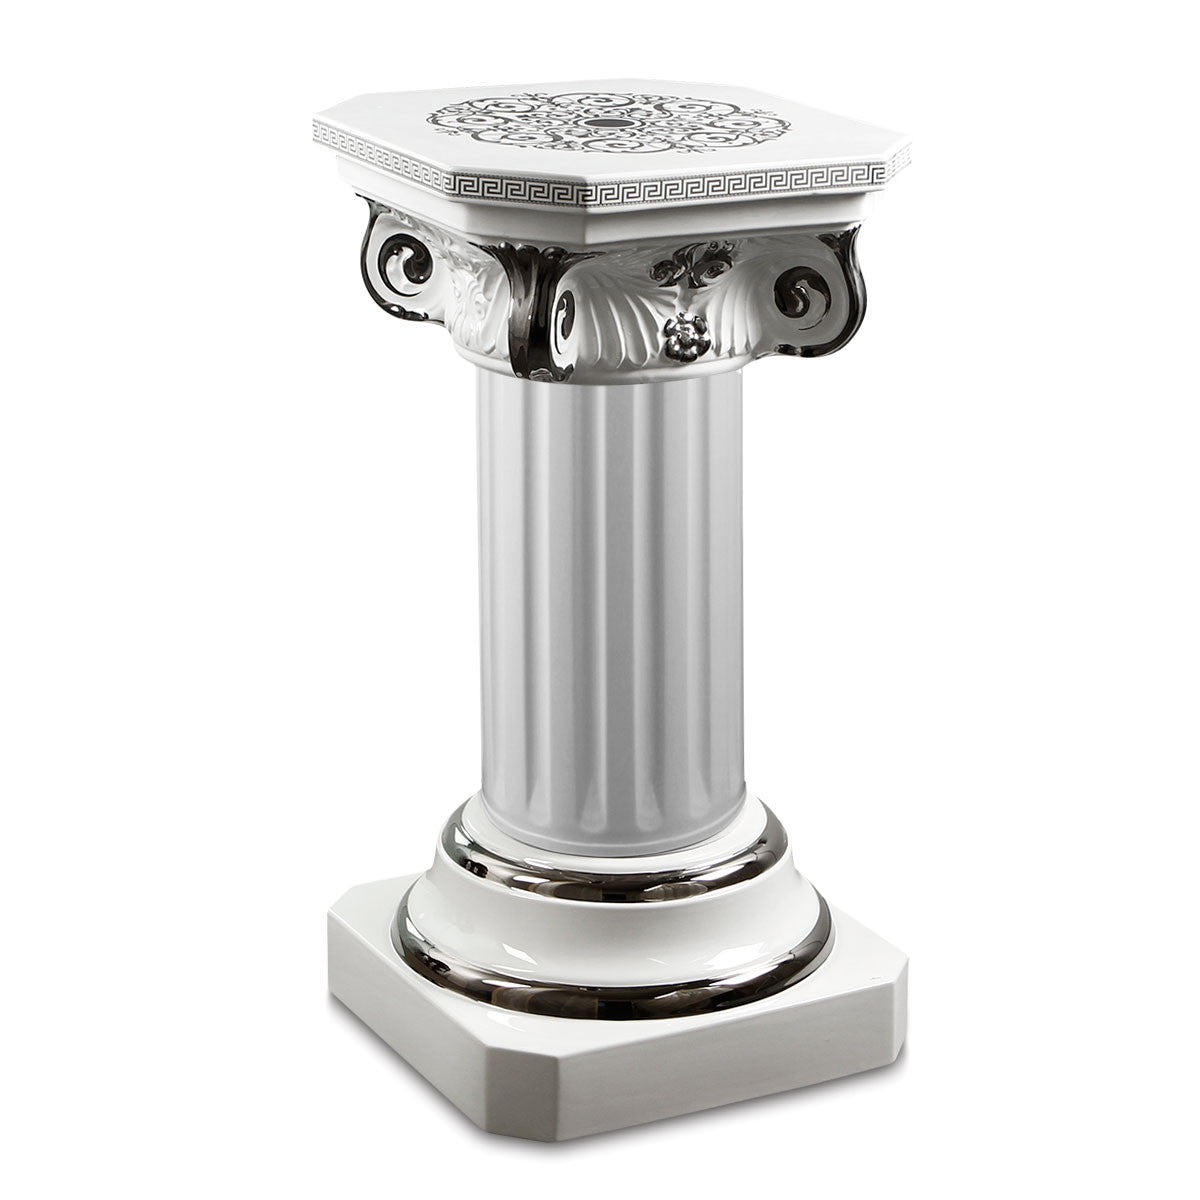 ceramic porcelain column with empire design finishing in pure platinum handmade in Italy